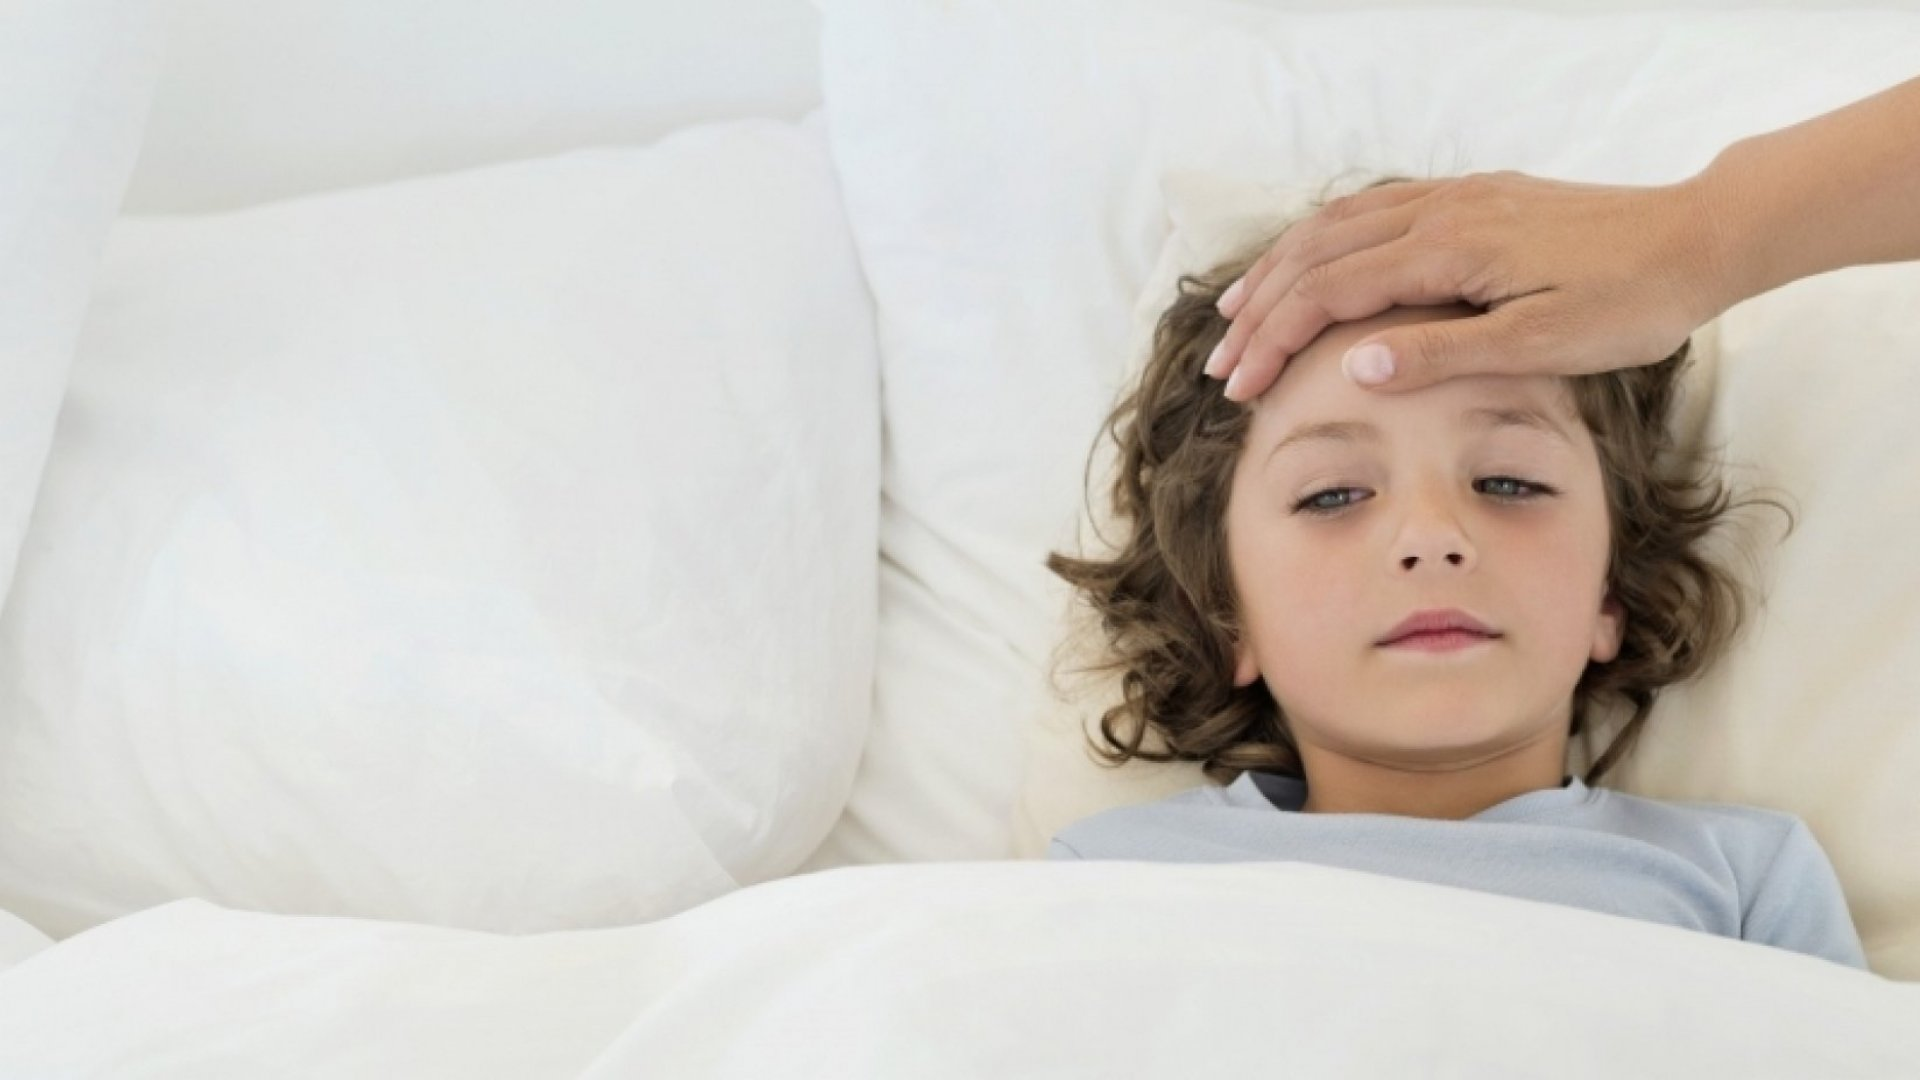 Are You Missing Too Much Work When Your Kids Are Sick?